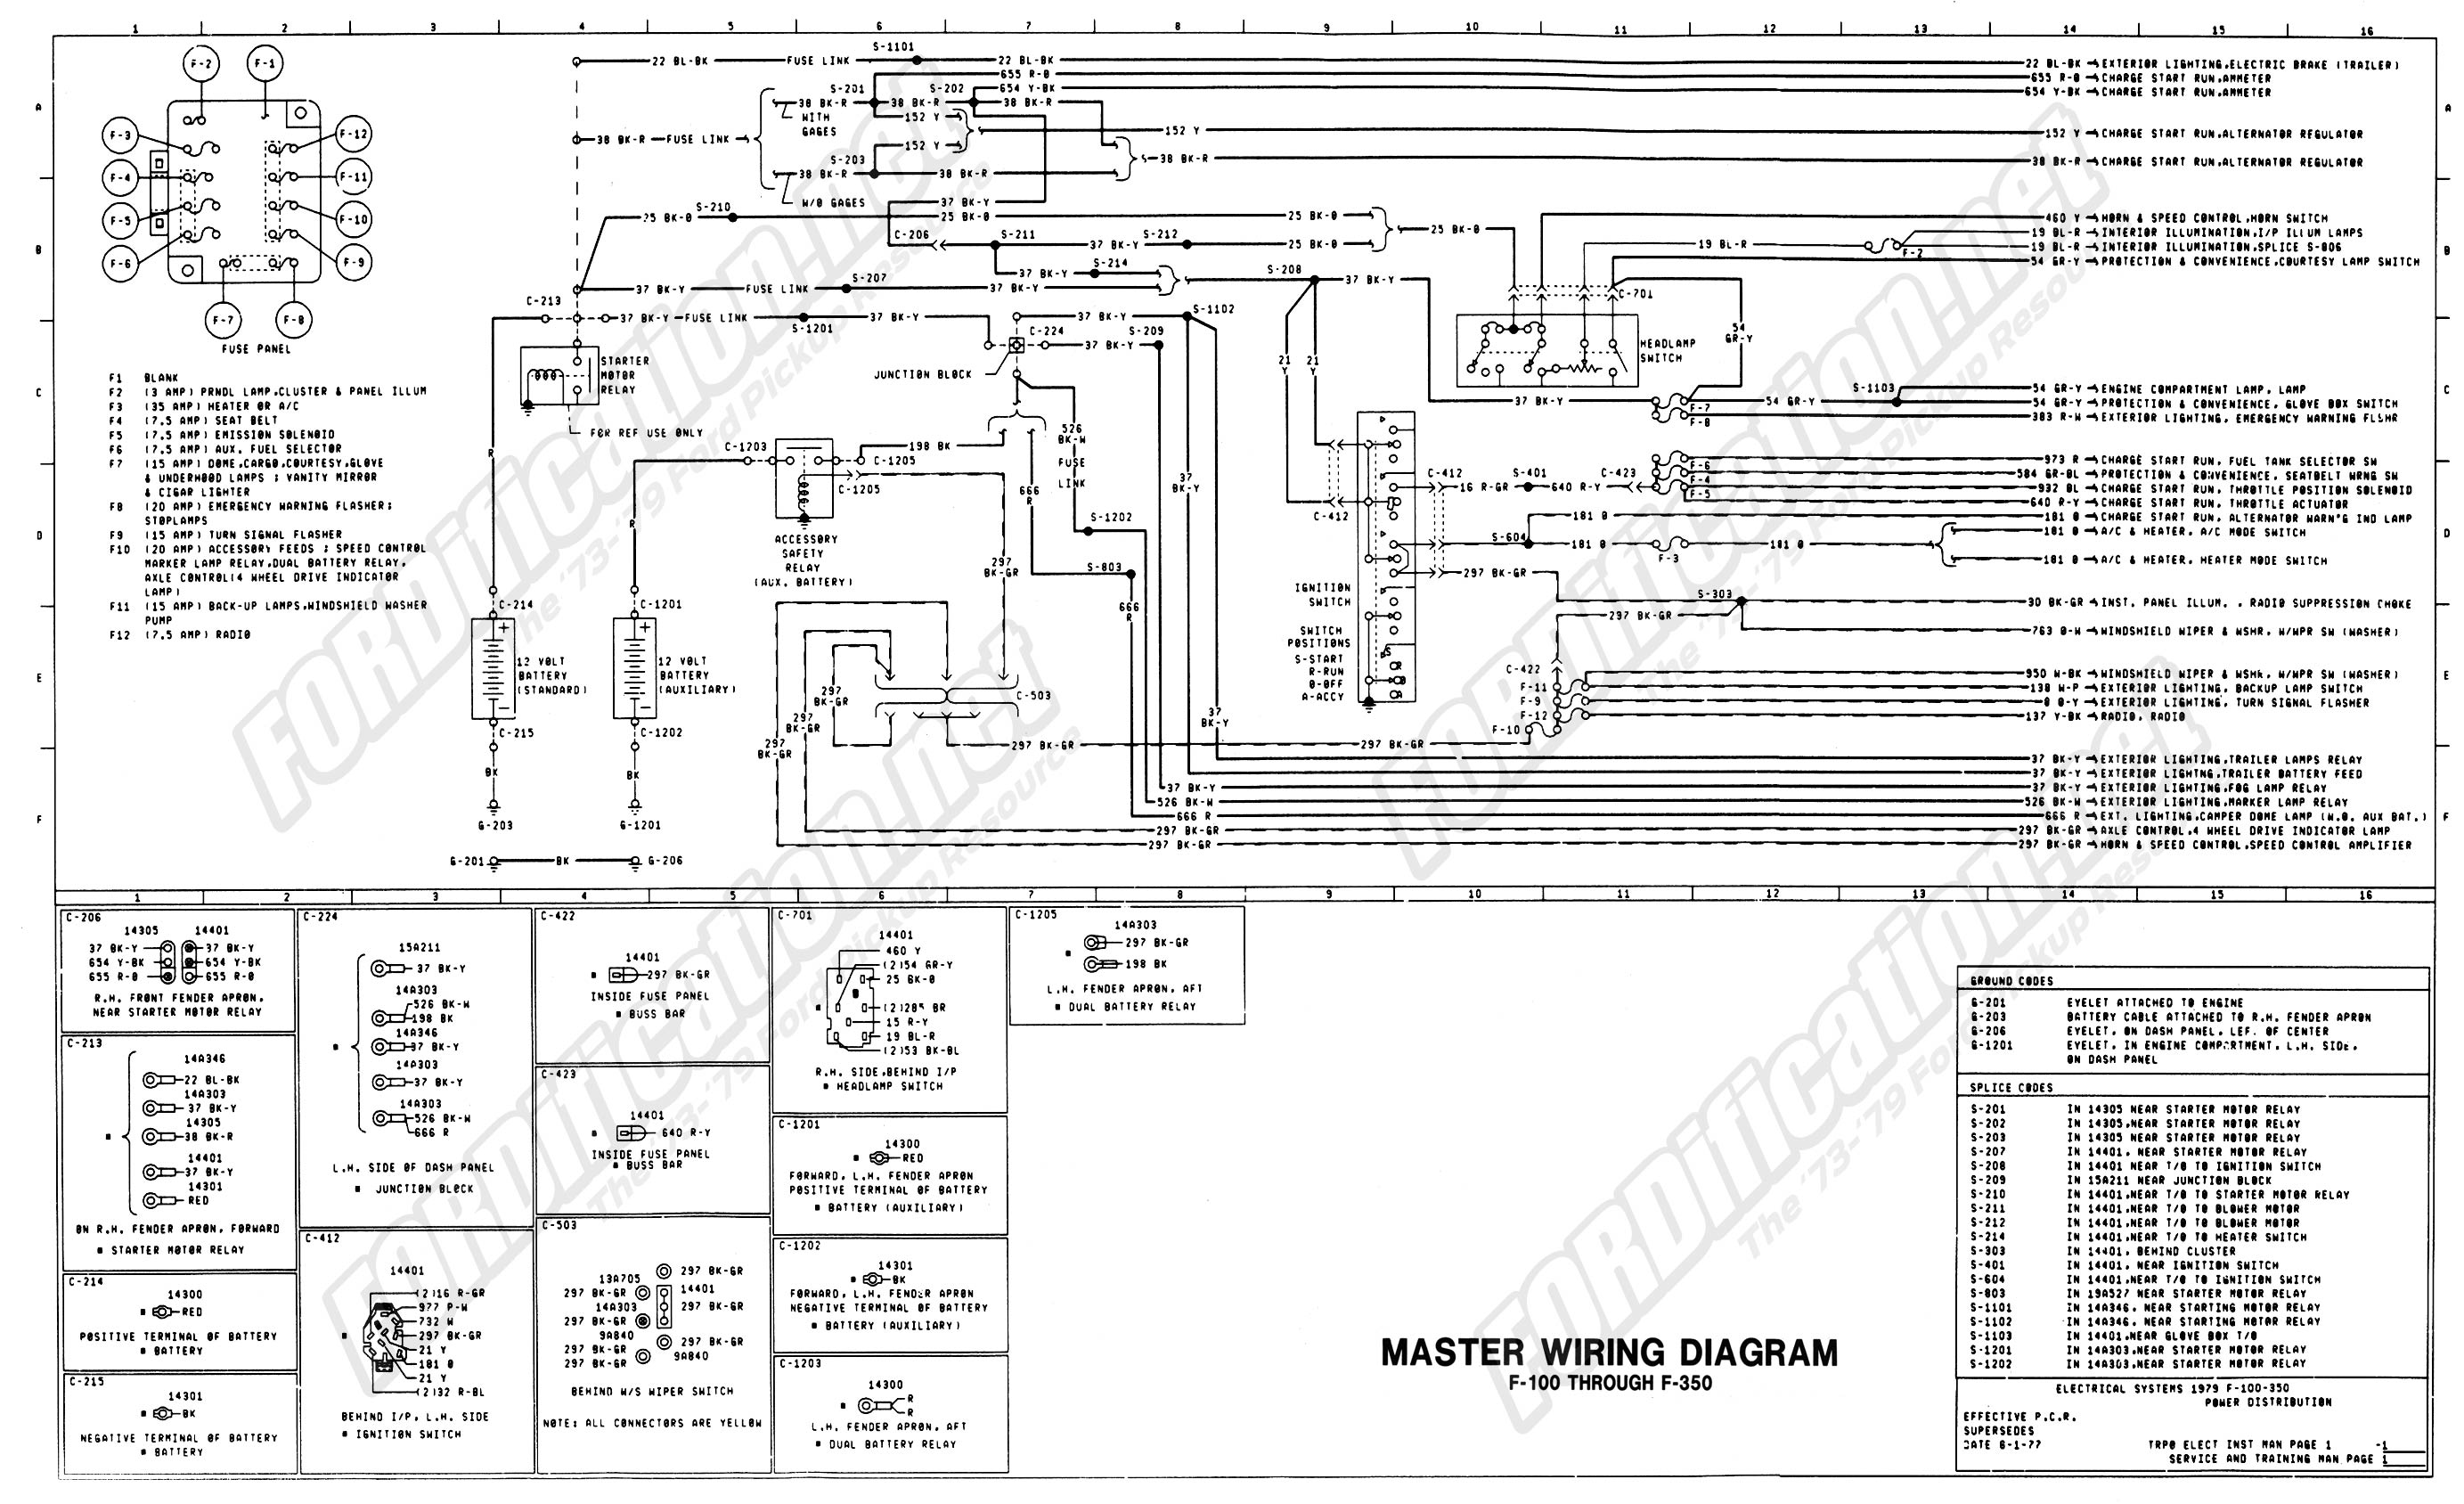 1979 Ford Truck Wiring System Modern Design Of Diagram 1978 Explorer 1973 Diagrams Schematics Fordification Net Rh 1975